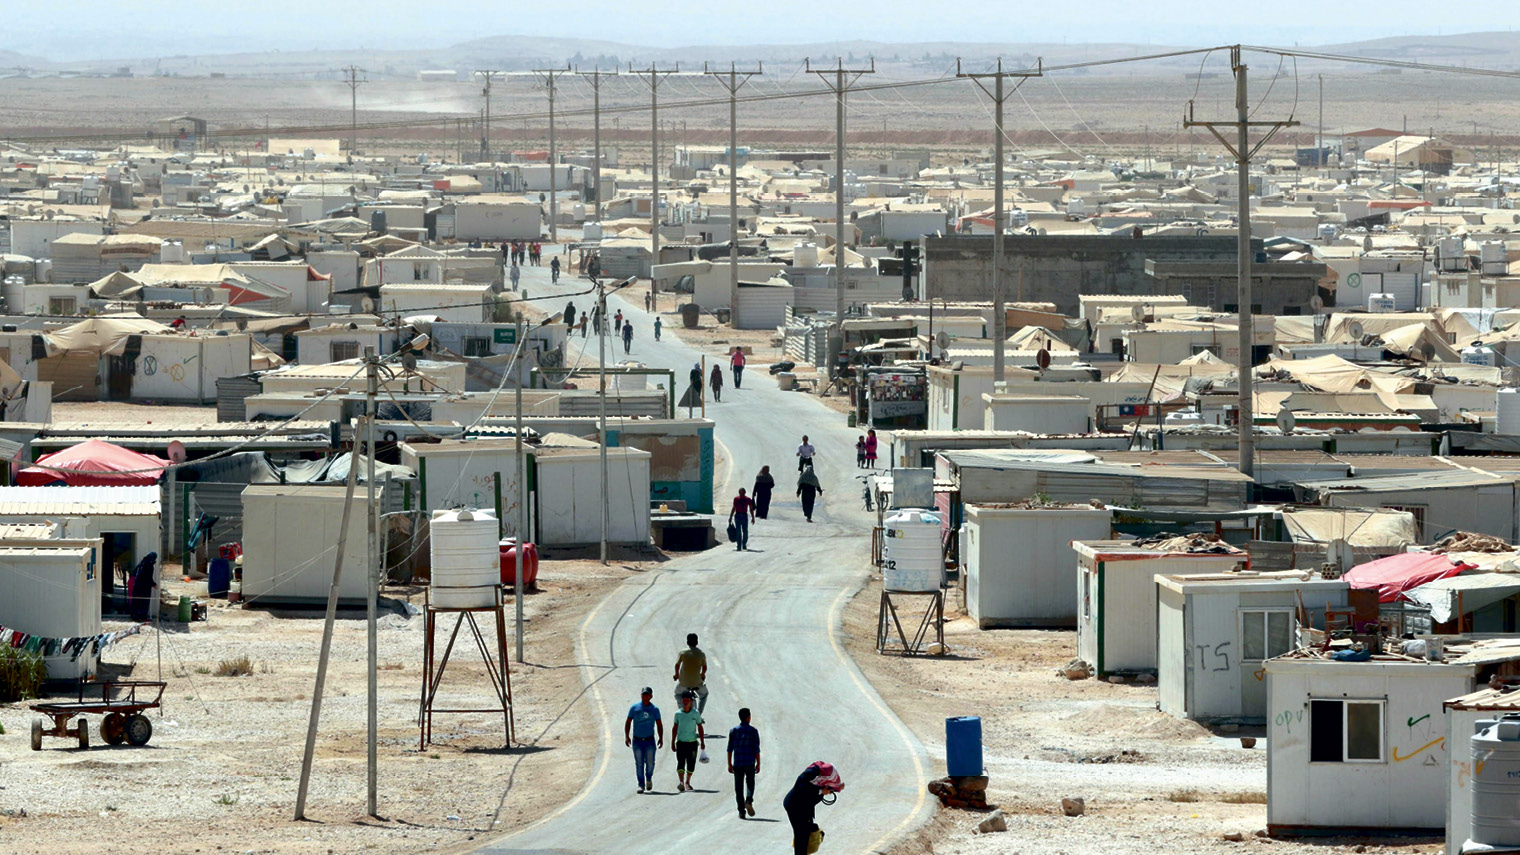 The UN-run Zaatari camp for Syrian refugees, north-east of Amman